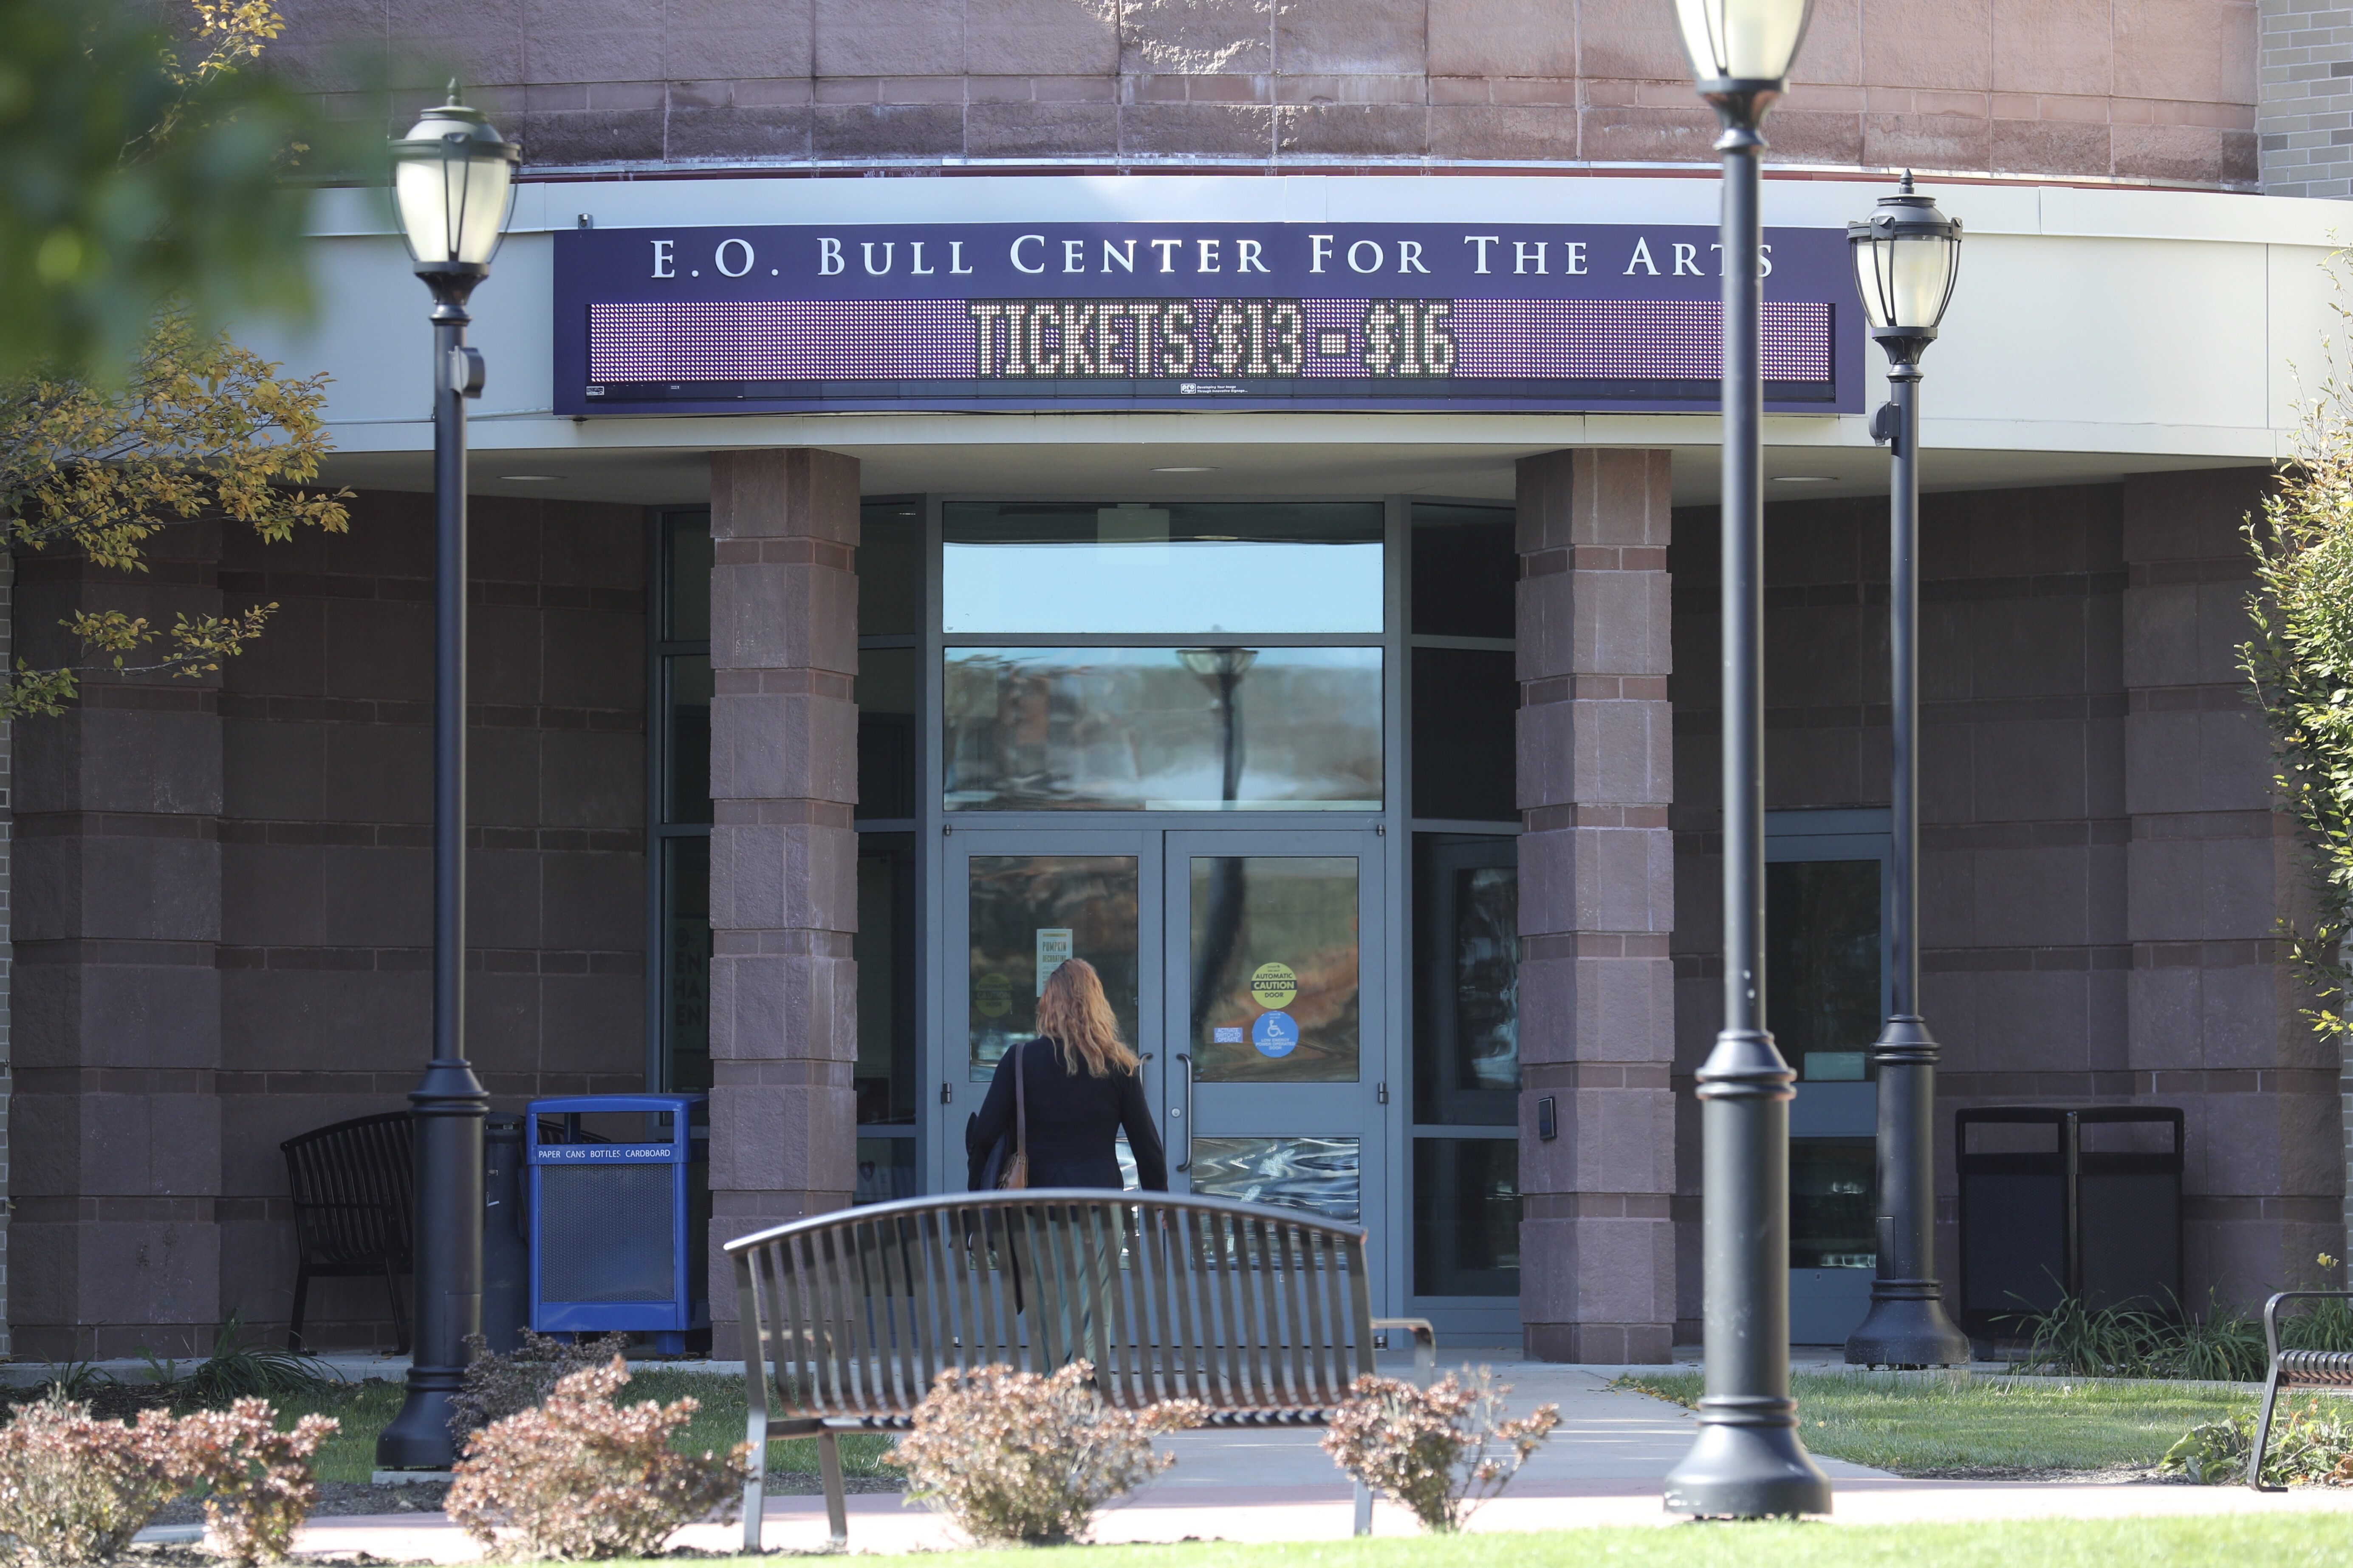 A bathroom in the E.O. Bull Center for the Arts at West Chester University is one of the places Joshua Yannuzzi is accused of hiding his cell phone.